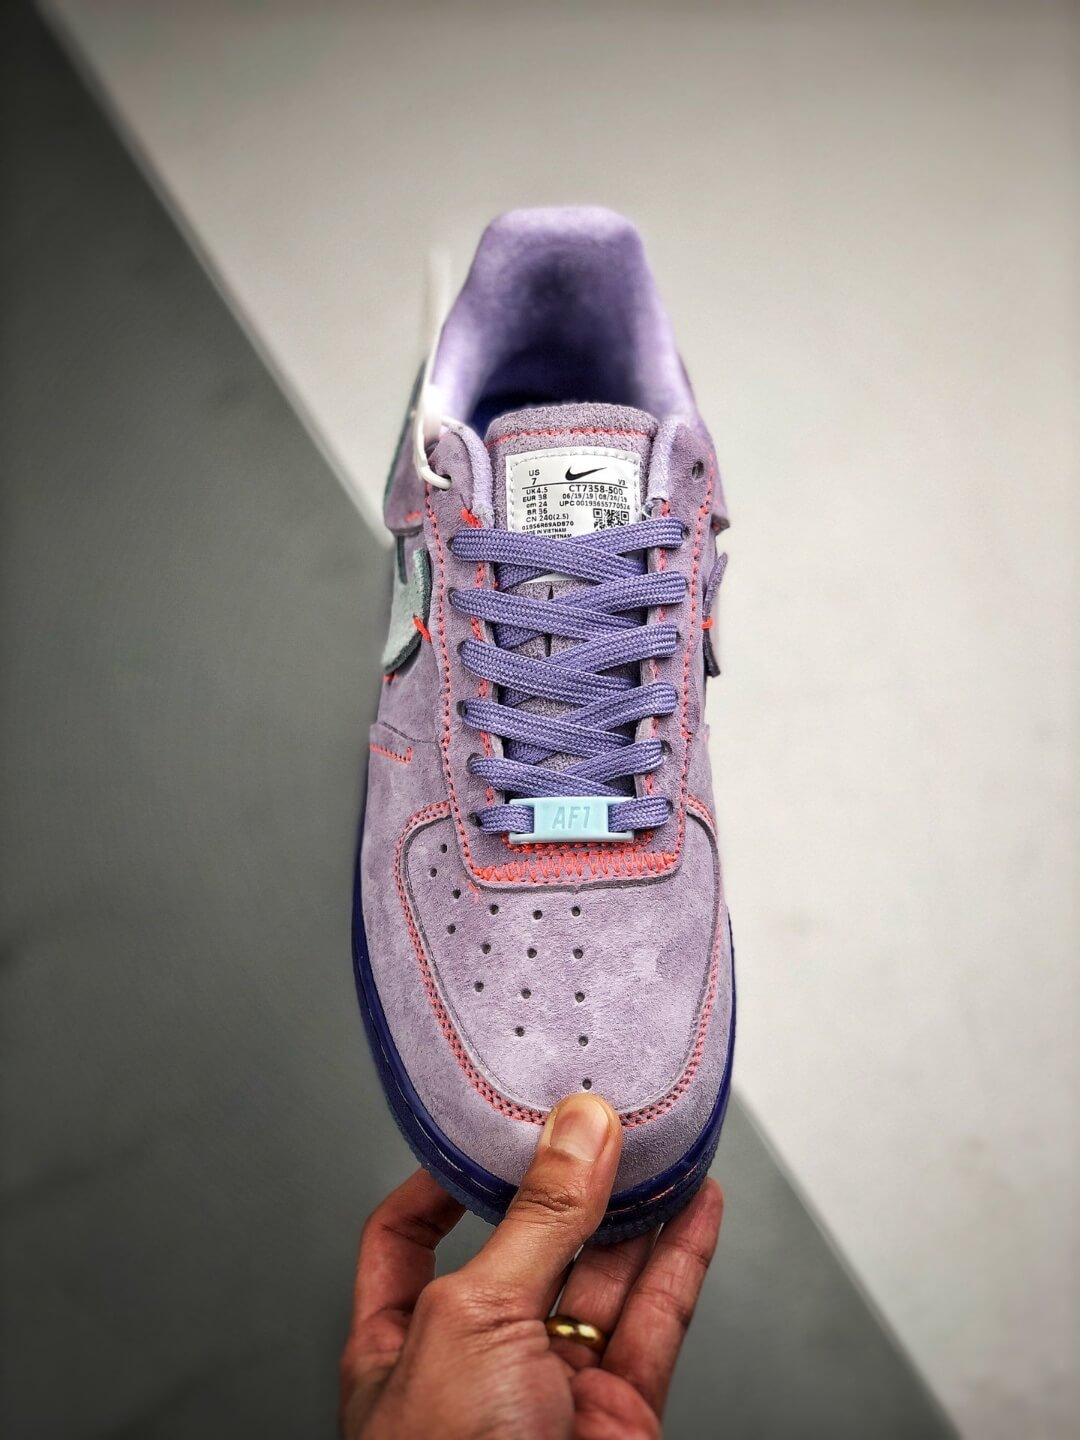 The Nike Wmns Air Force 1 Low LX Purple Agate Suede Upper Orange Stitches Ocean Blue Outsoles Repsneaker 03